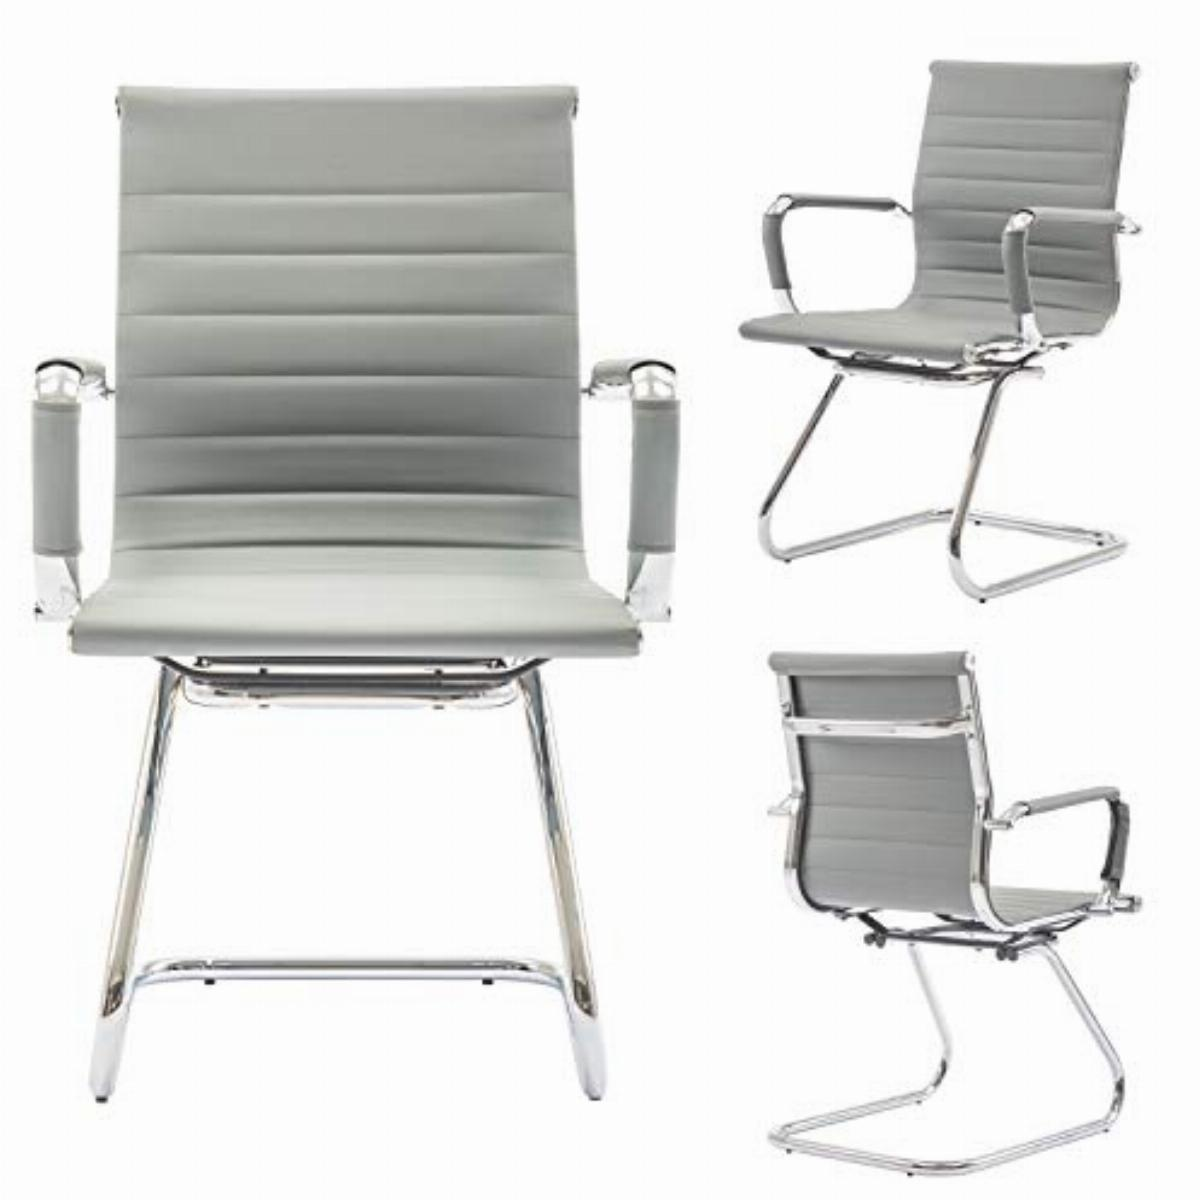 Wahson Meeting Office Chairs Set Of 2 Reception Chairs In Pu Leather Visitors Chair With Chrome Frame Guest Chairs Grey